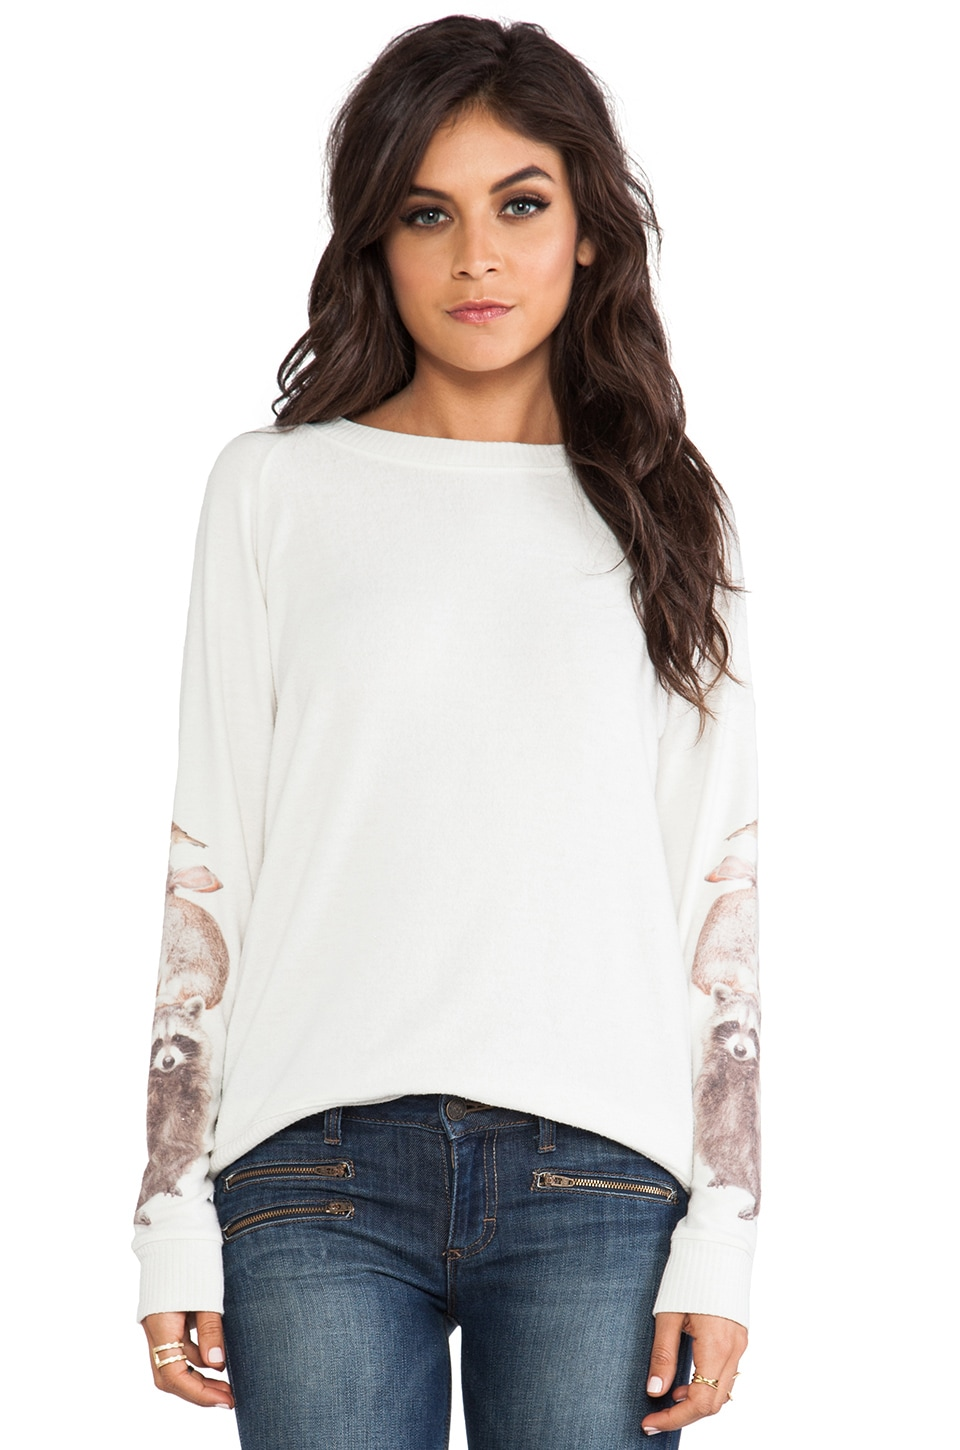 All Things Fabulous 3 Amigos Cozy Sweatshirt in Stone